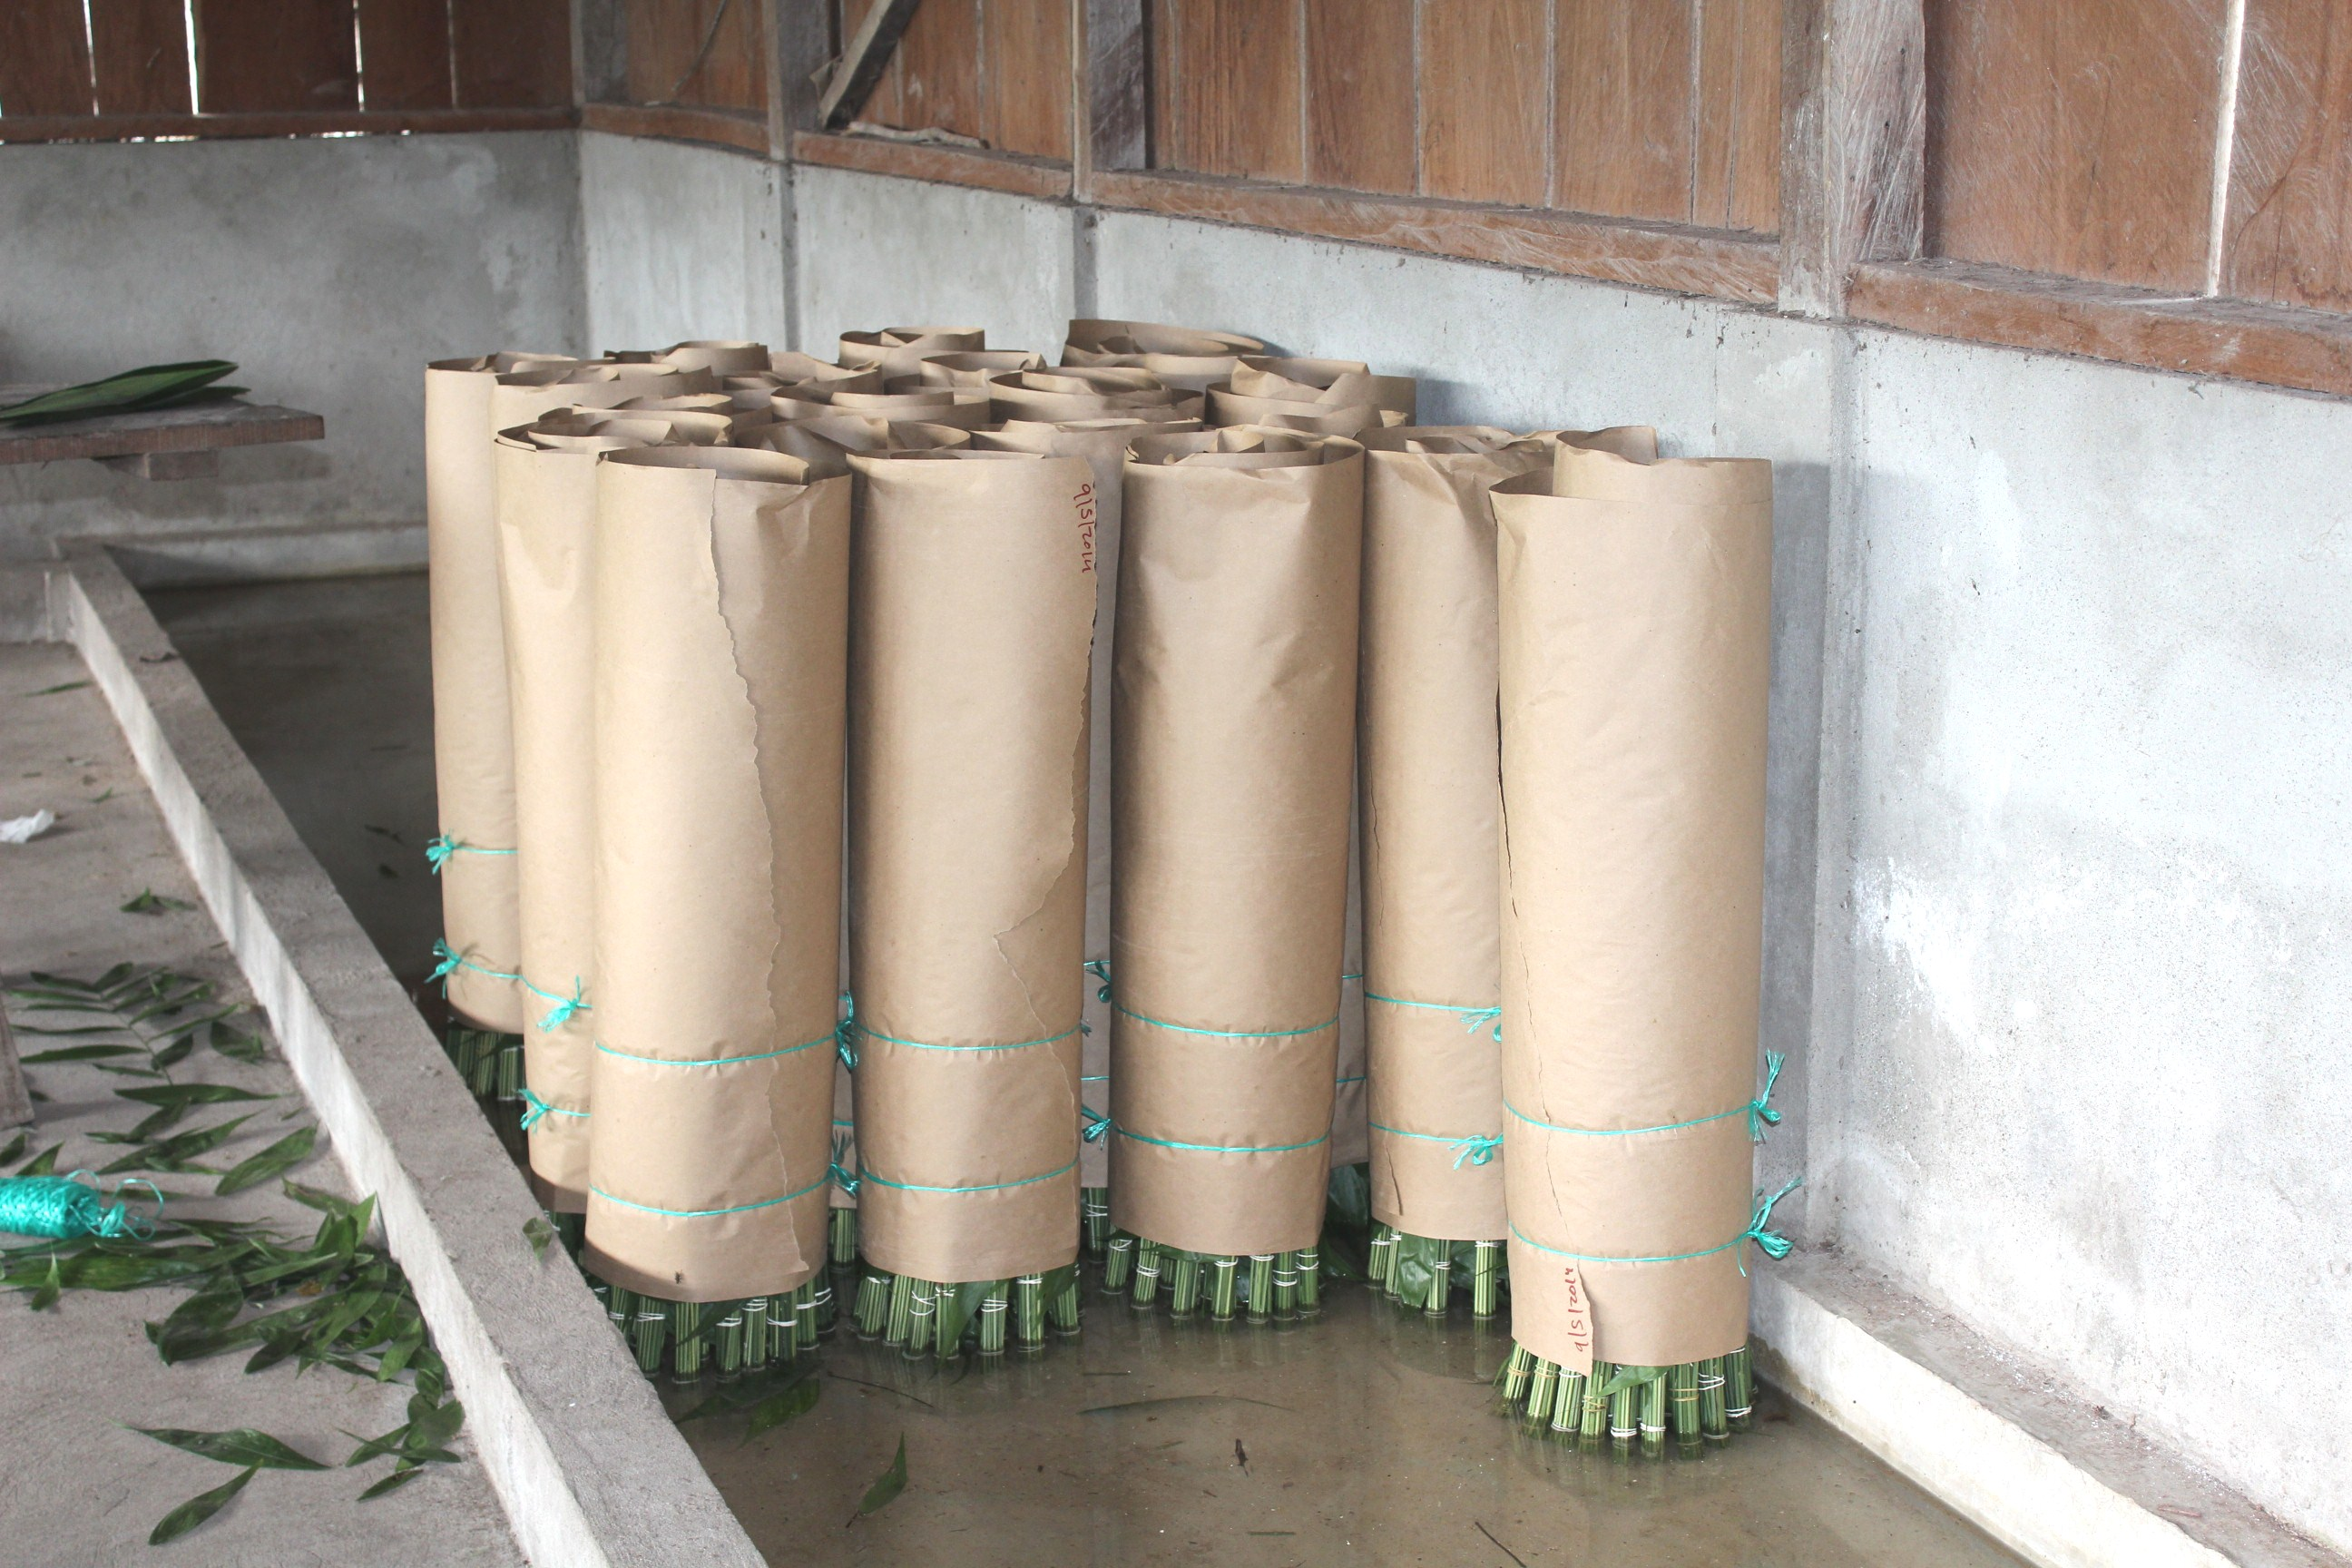 Bundles of xate in Uaxactún are ready for transport to the central processing facility.